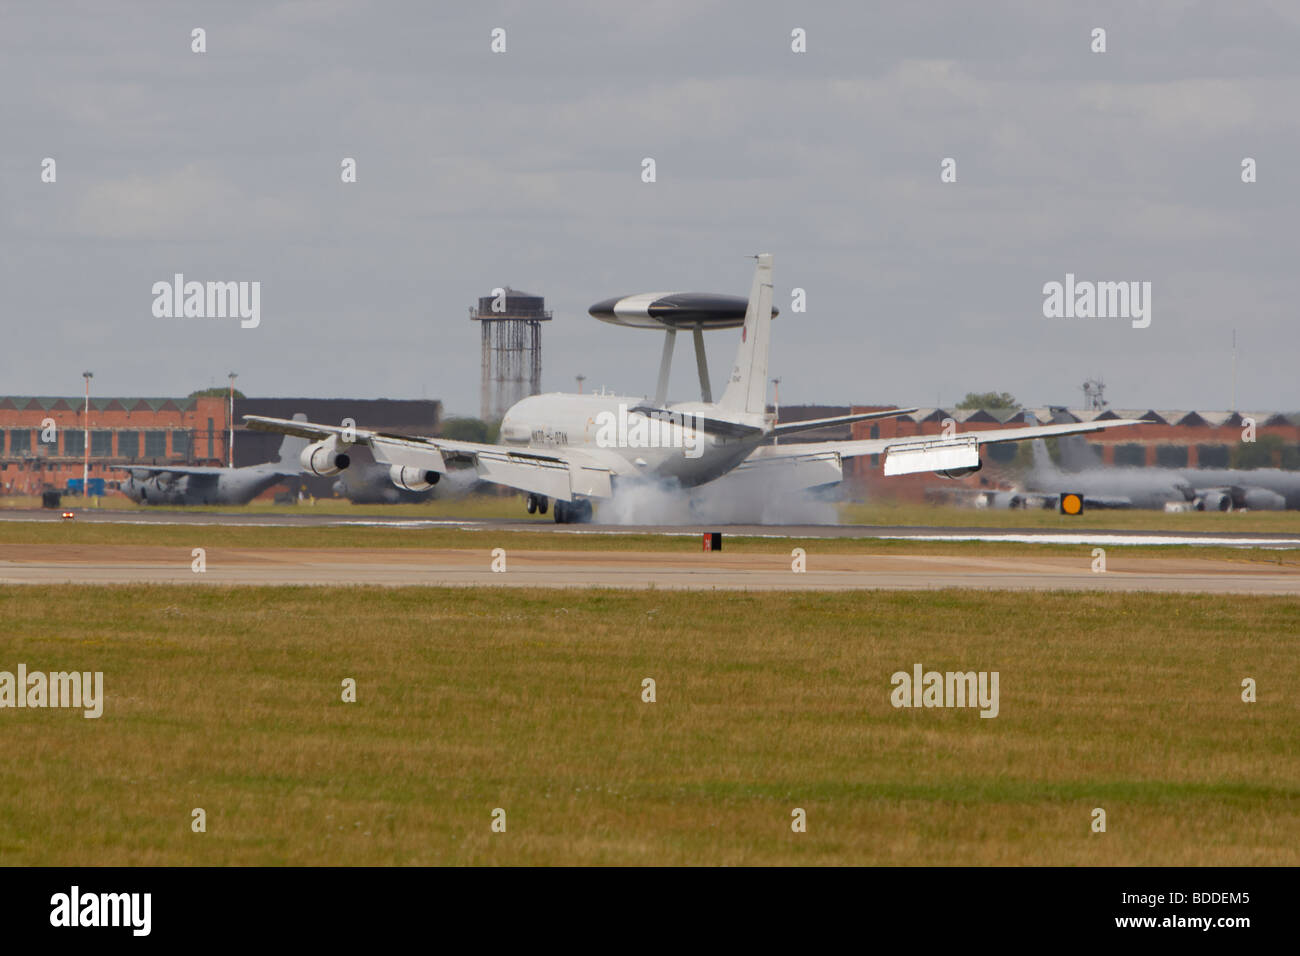 Boeing E-3A Sentry touching down at RAF Mildenhall, Suffolk, England, United Kingdom Stock Photo